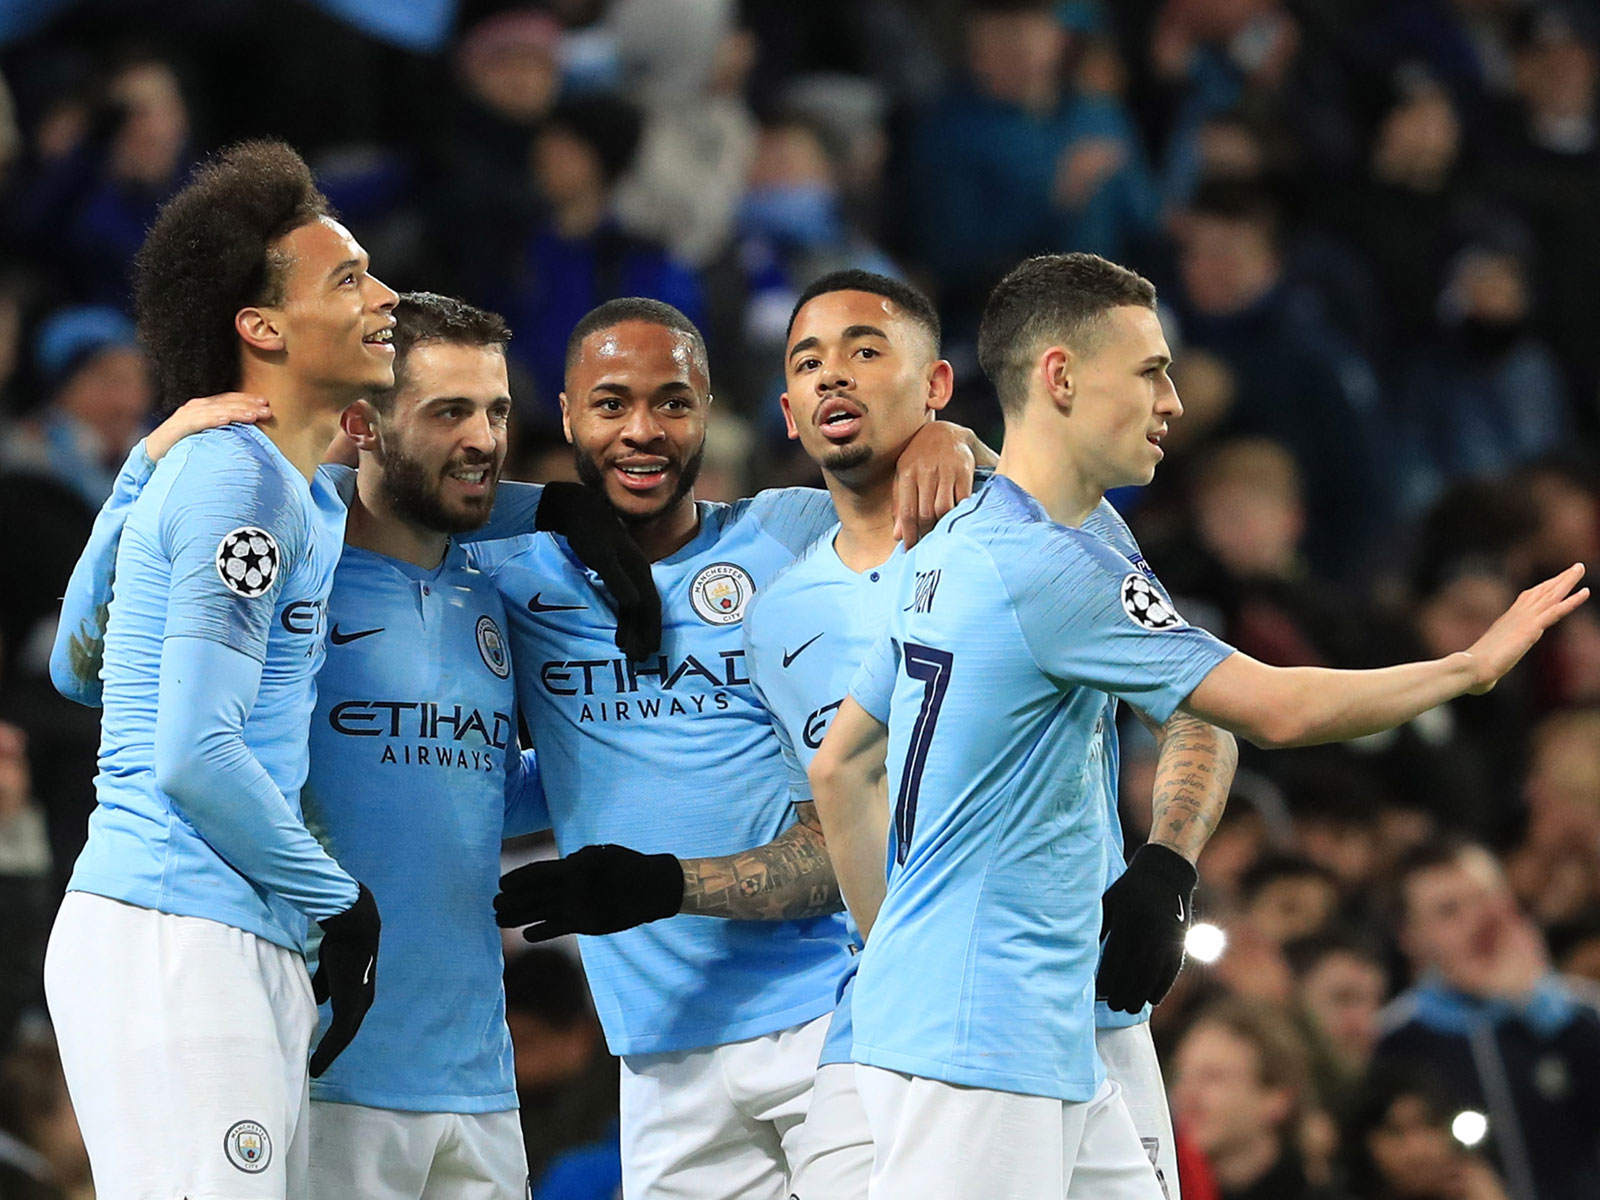 Man City thrashes Schalke to advance in Champions League